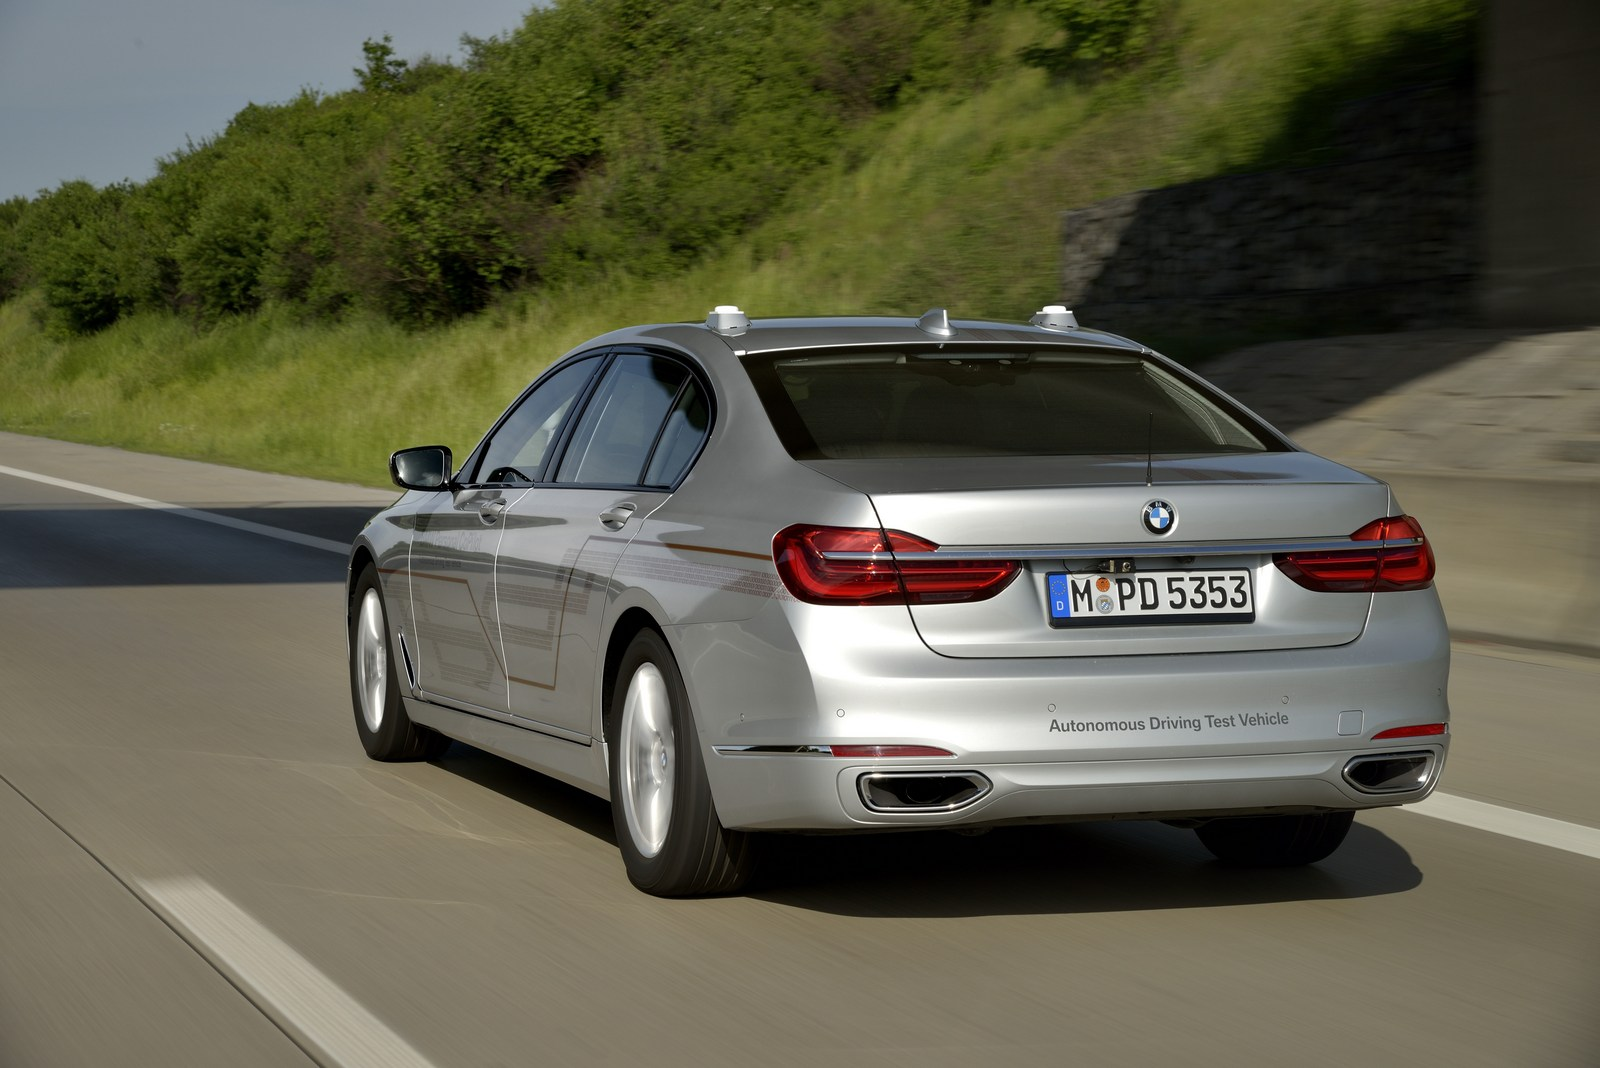 SPIED: Facelifted BMW 7 Series caught testing, shows new gauge cluster